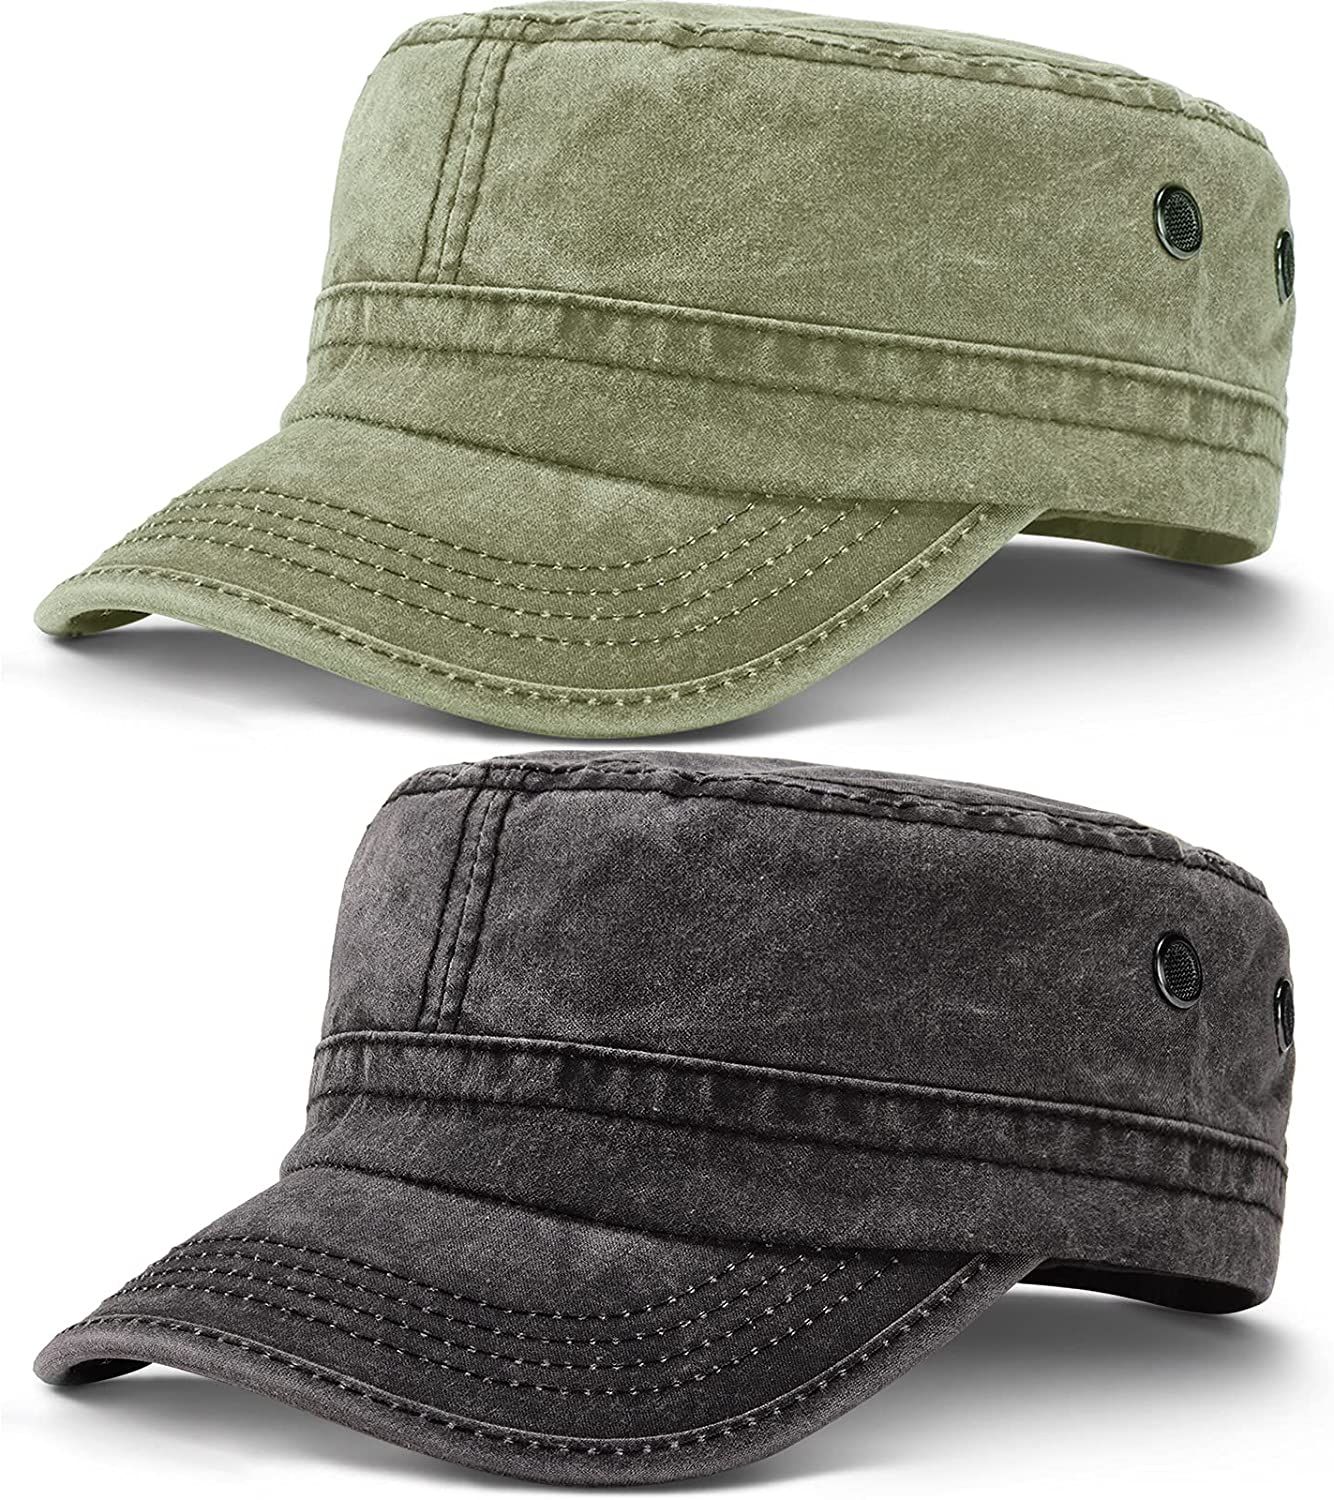 2 Pieces Cadet Army Caps Military Flat Top Cap Washed Military Unisex Cadet Cap